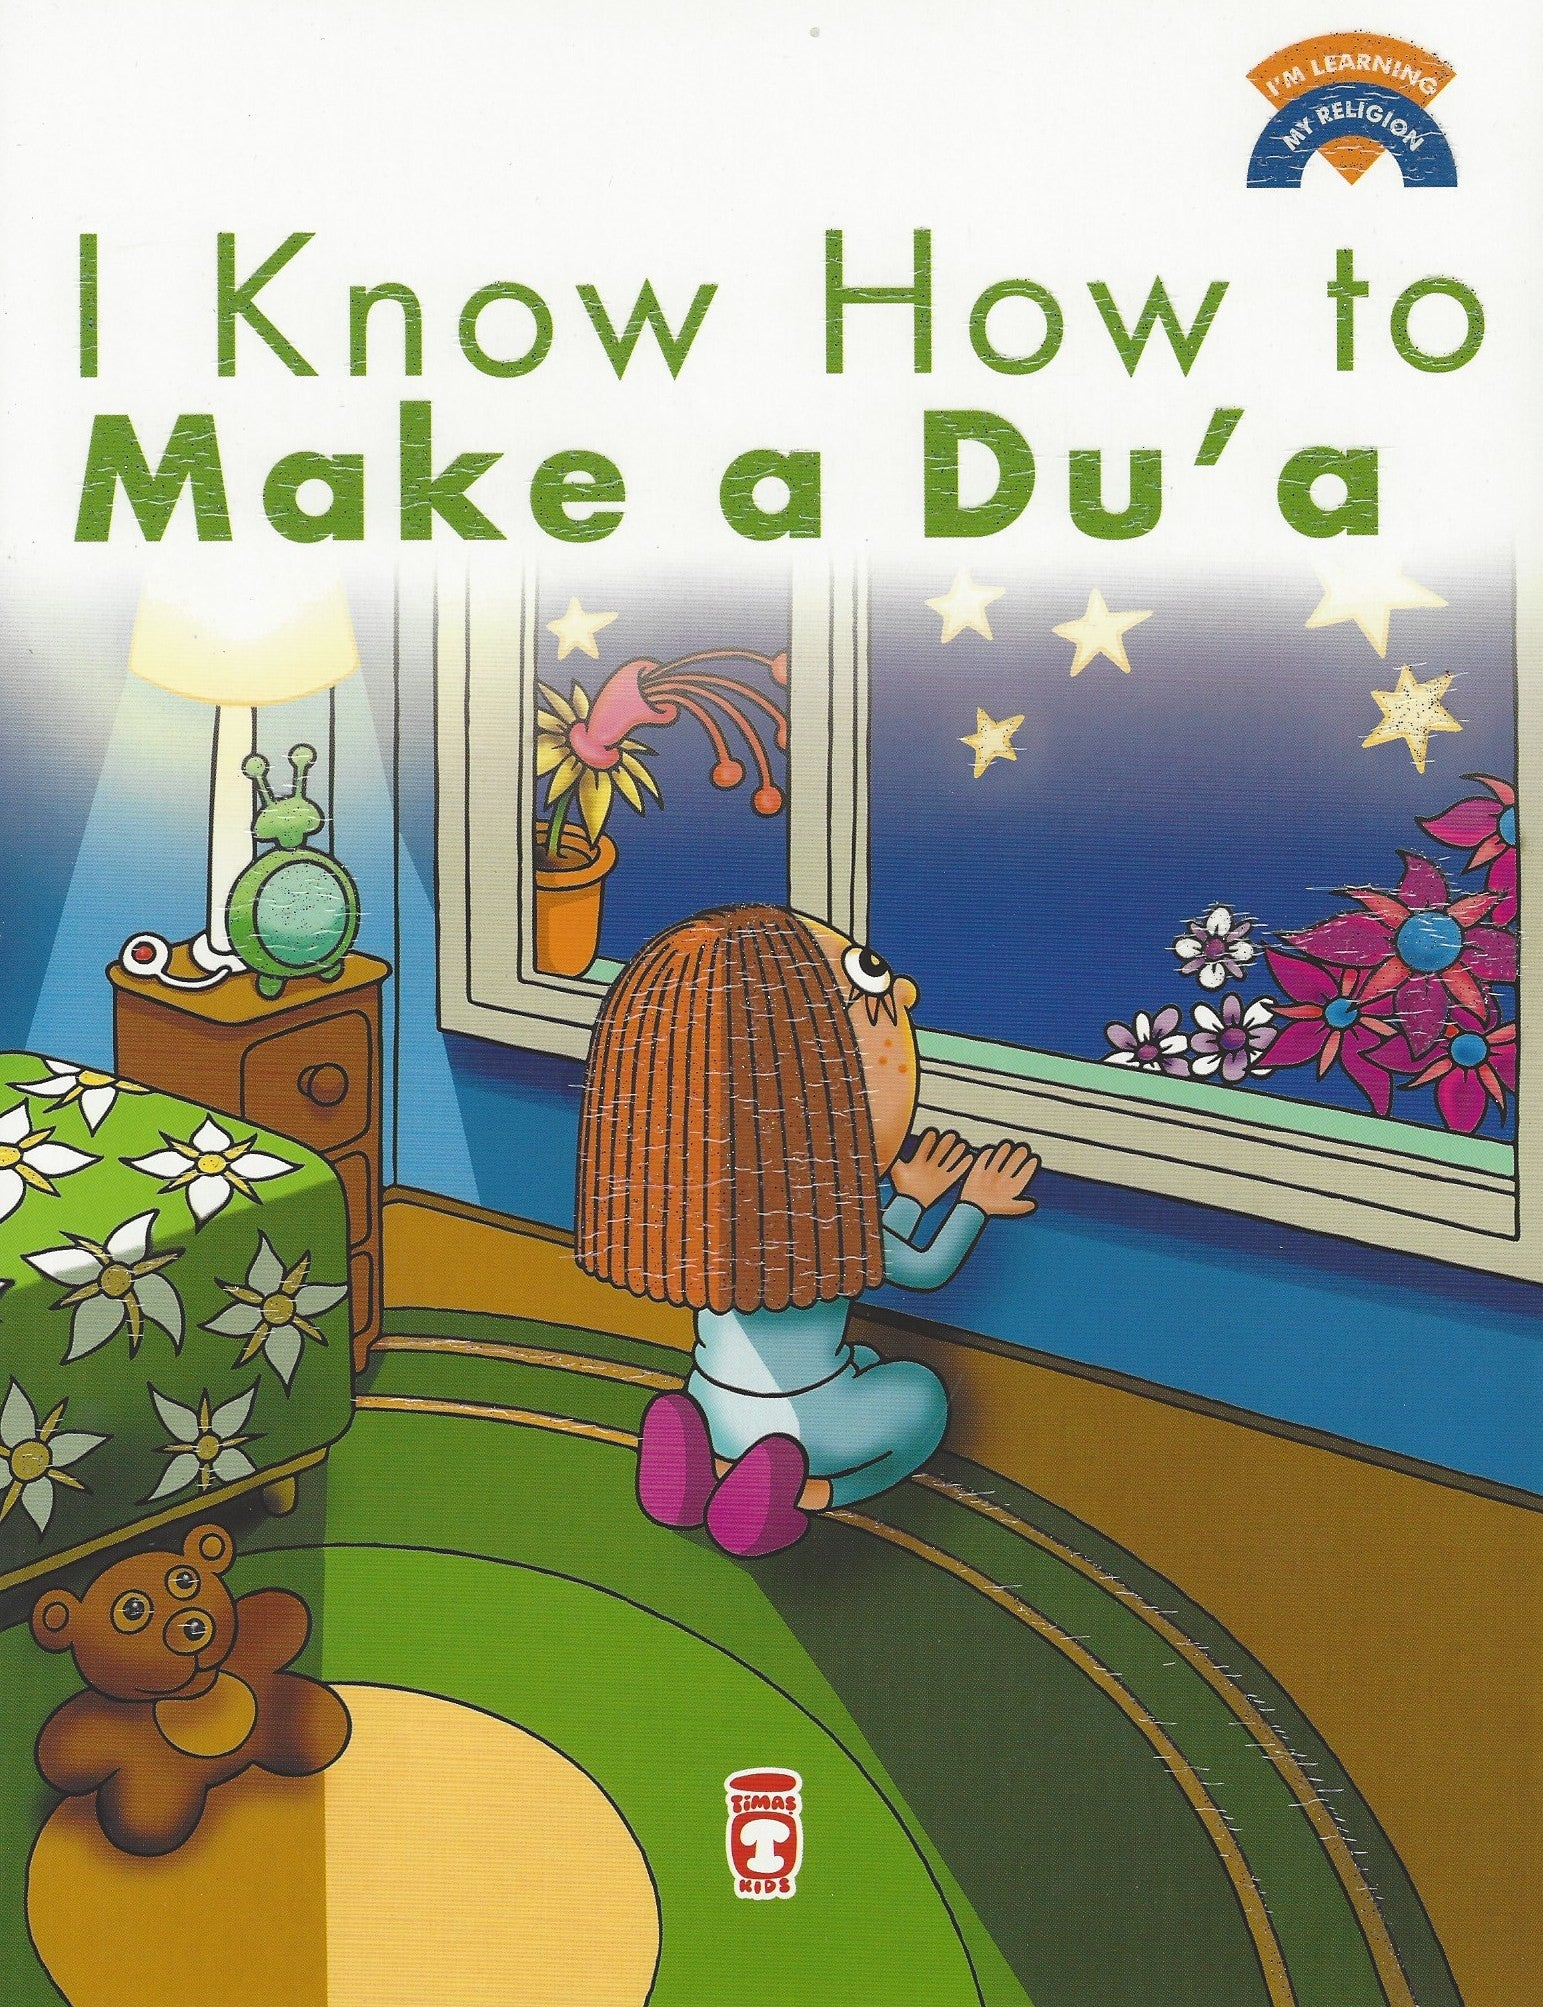 I'm Learning My Religion (10 volume set) I Know How to Make Du'a, Book - Daybreak International Bookstore, Daybreak Press Global Bookshop  - 3